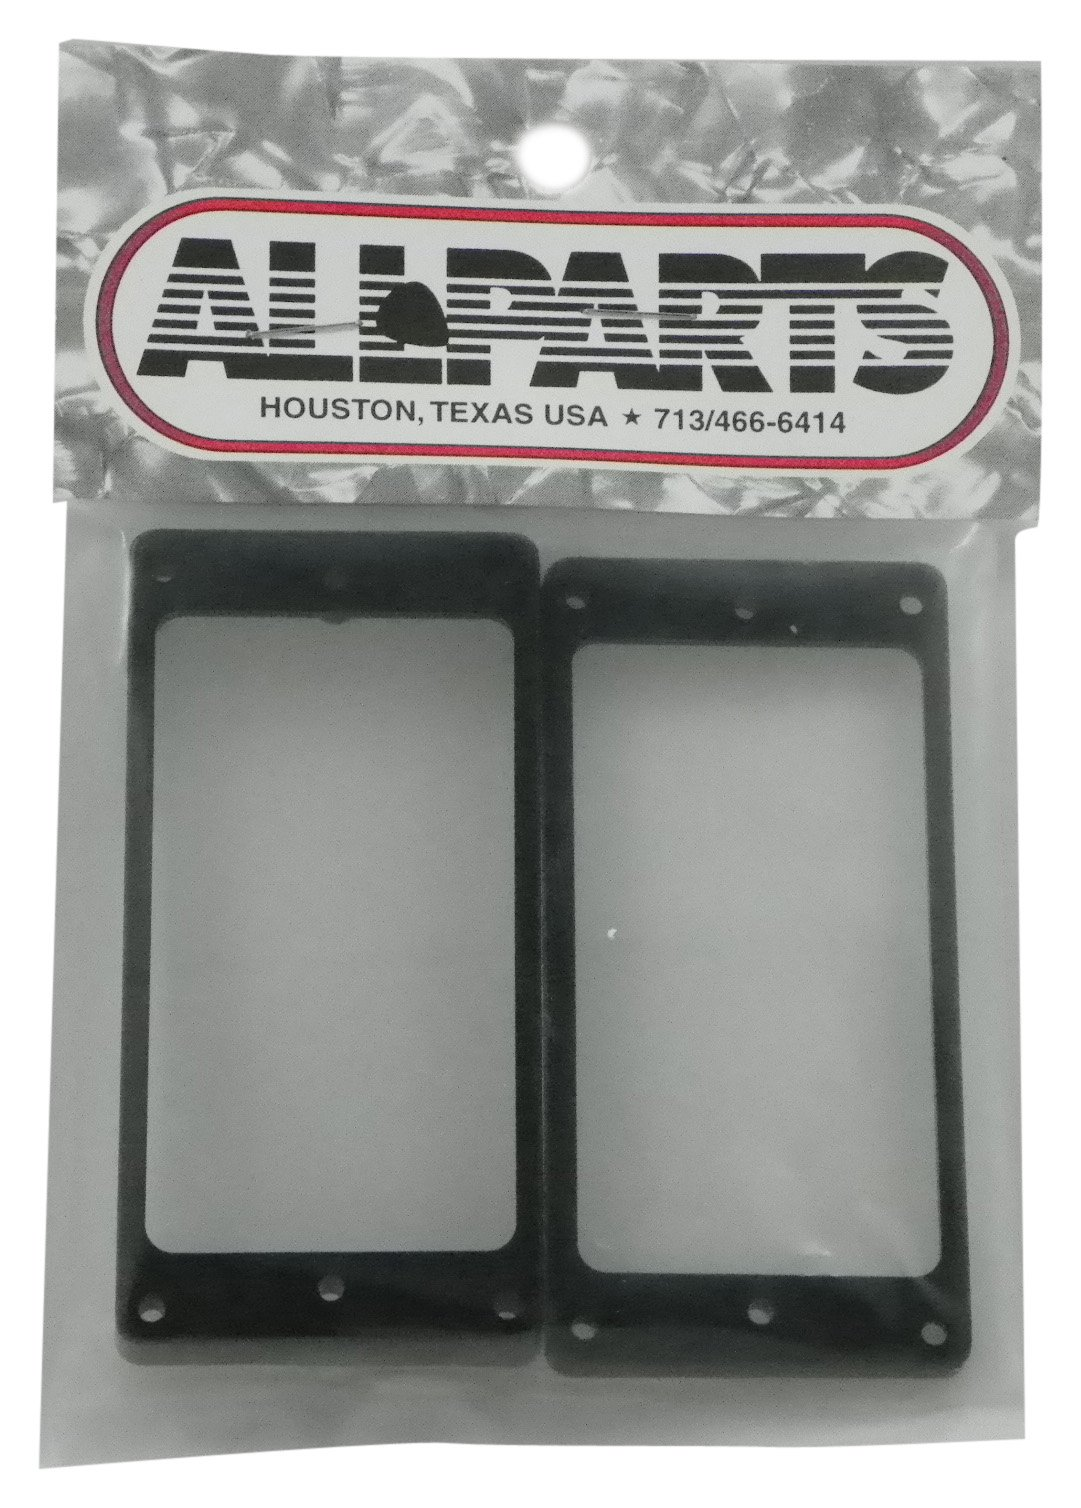 All Parts PC 0743-023 Black Humbucking Pickup Ring Set